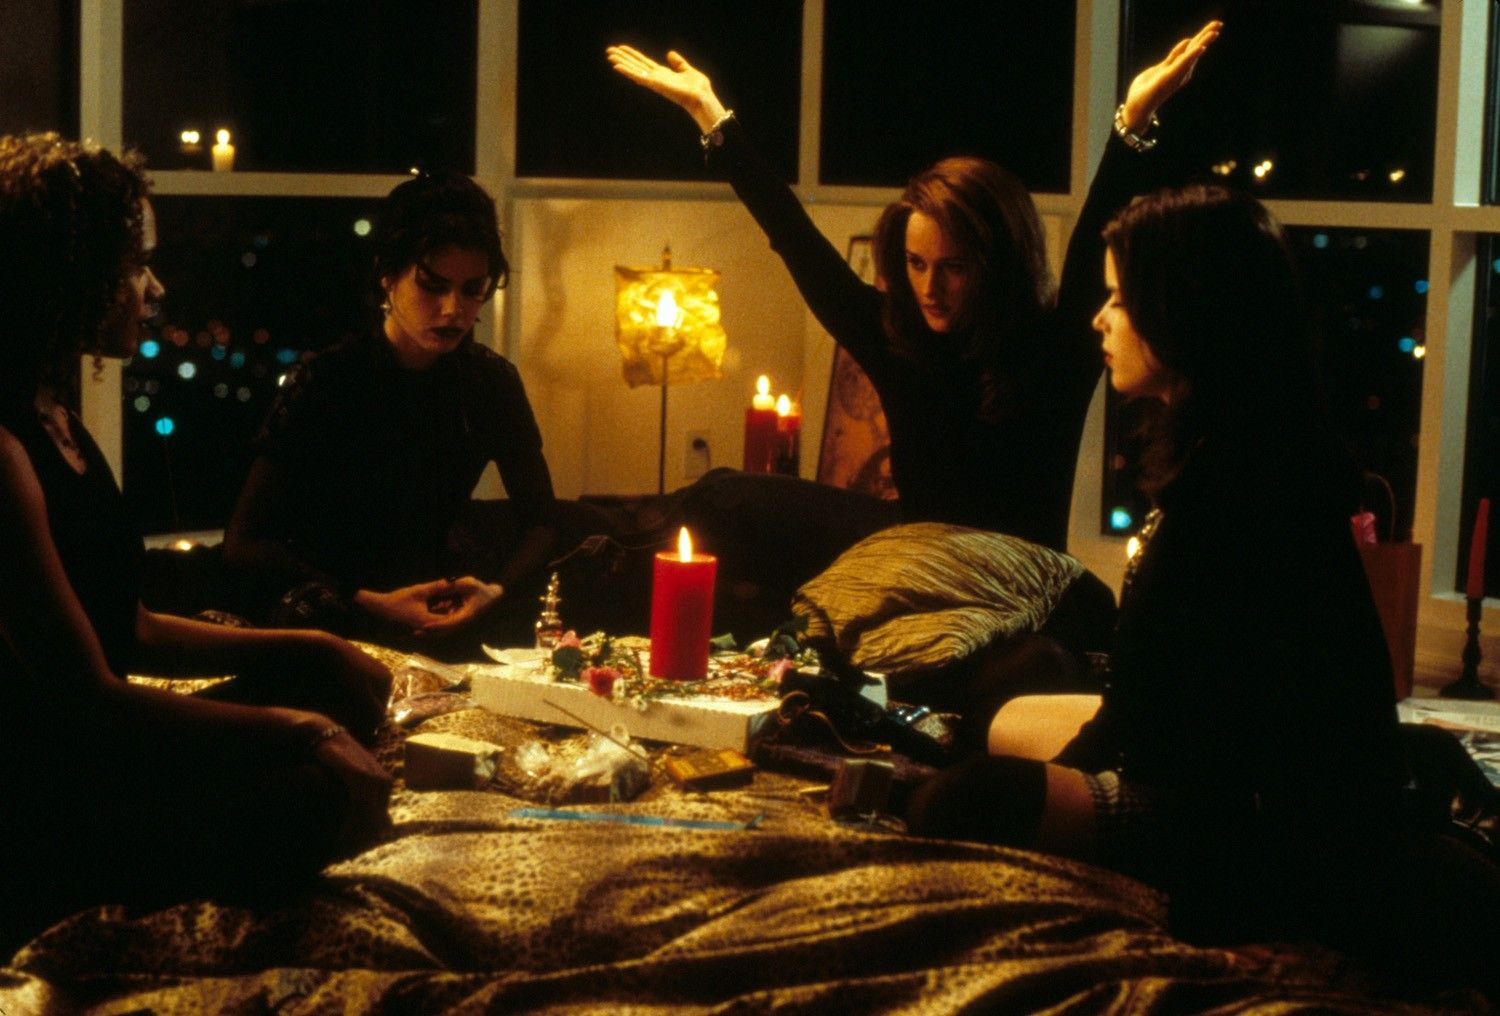 42+ Witch movies like the craft ideas